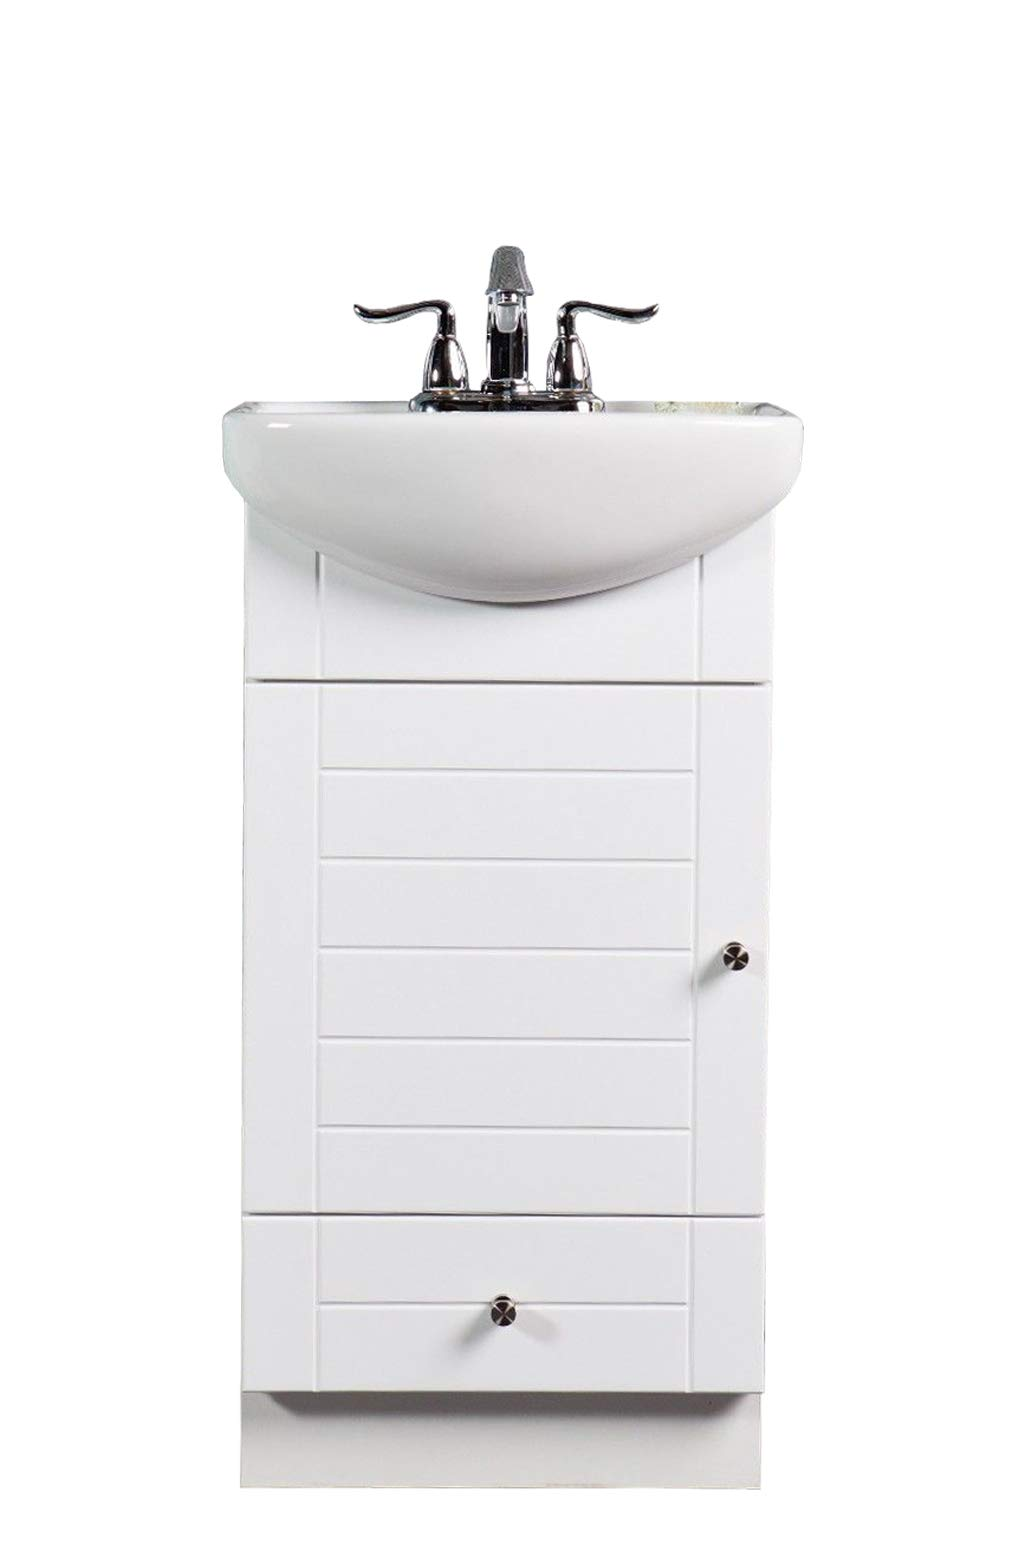 Best Small Bathroom Vanities SMALL BATHROOM VANITY CABINET AND SINK WHITE - PE1612W NEW PETITE VANITY